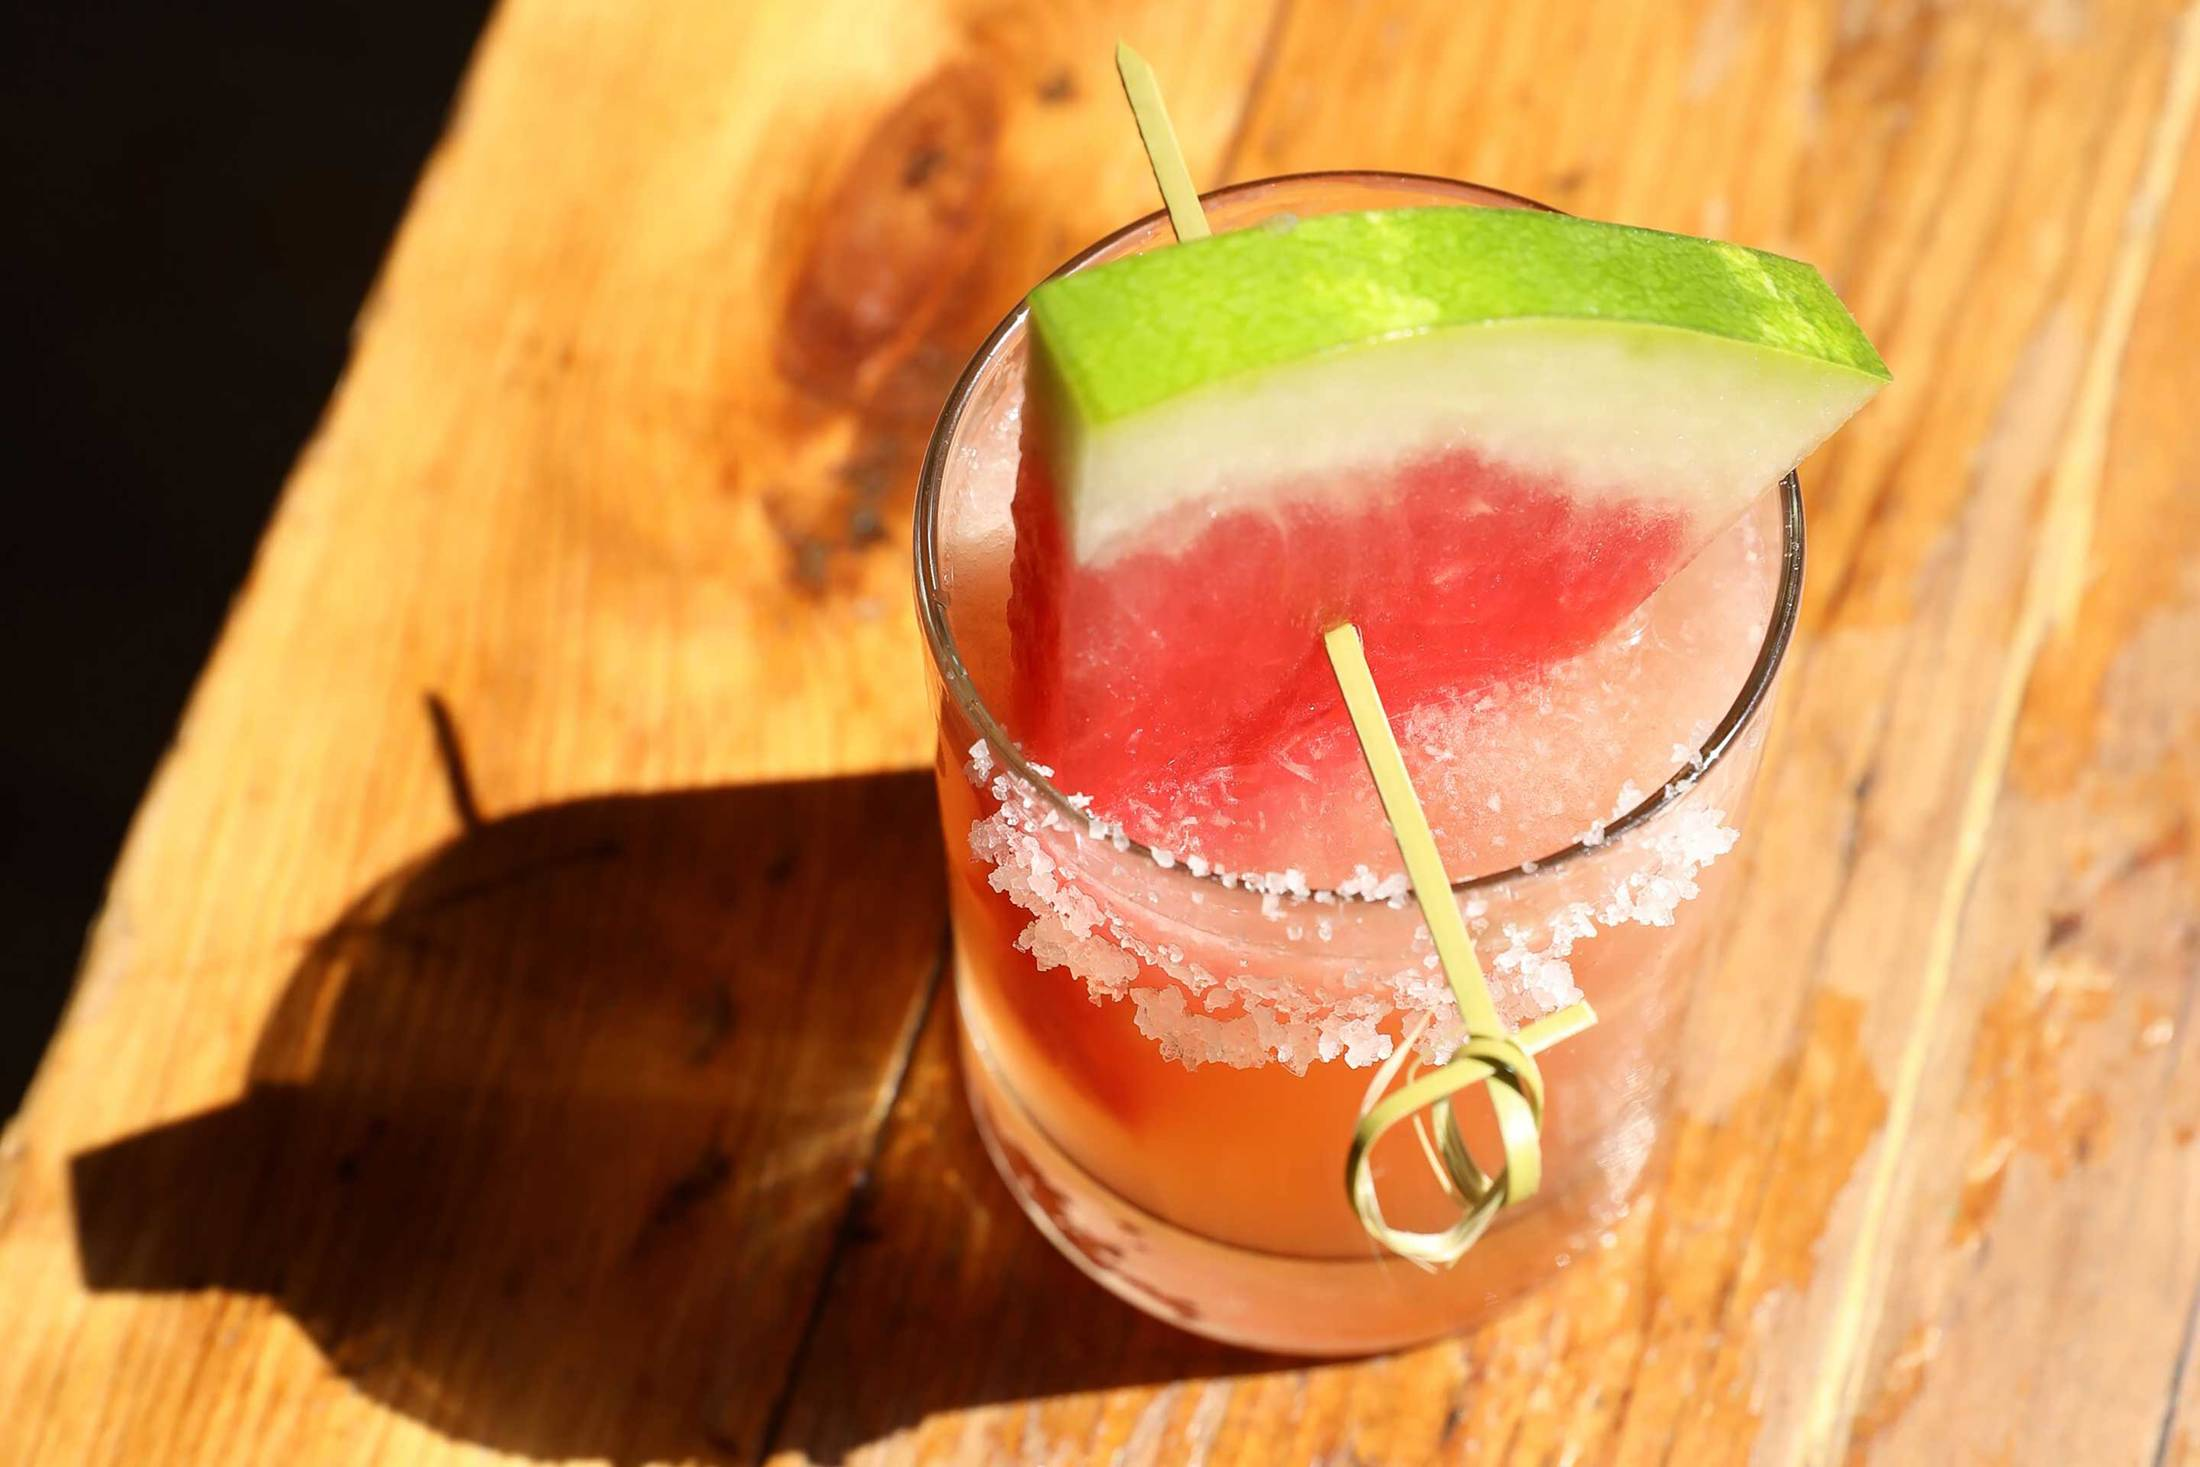 Watermelon margarita with Azuca hemp infused syrup at Bubby's.  Courtesy of Alexander Stein